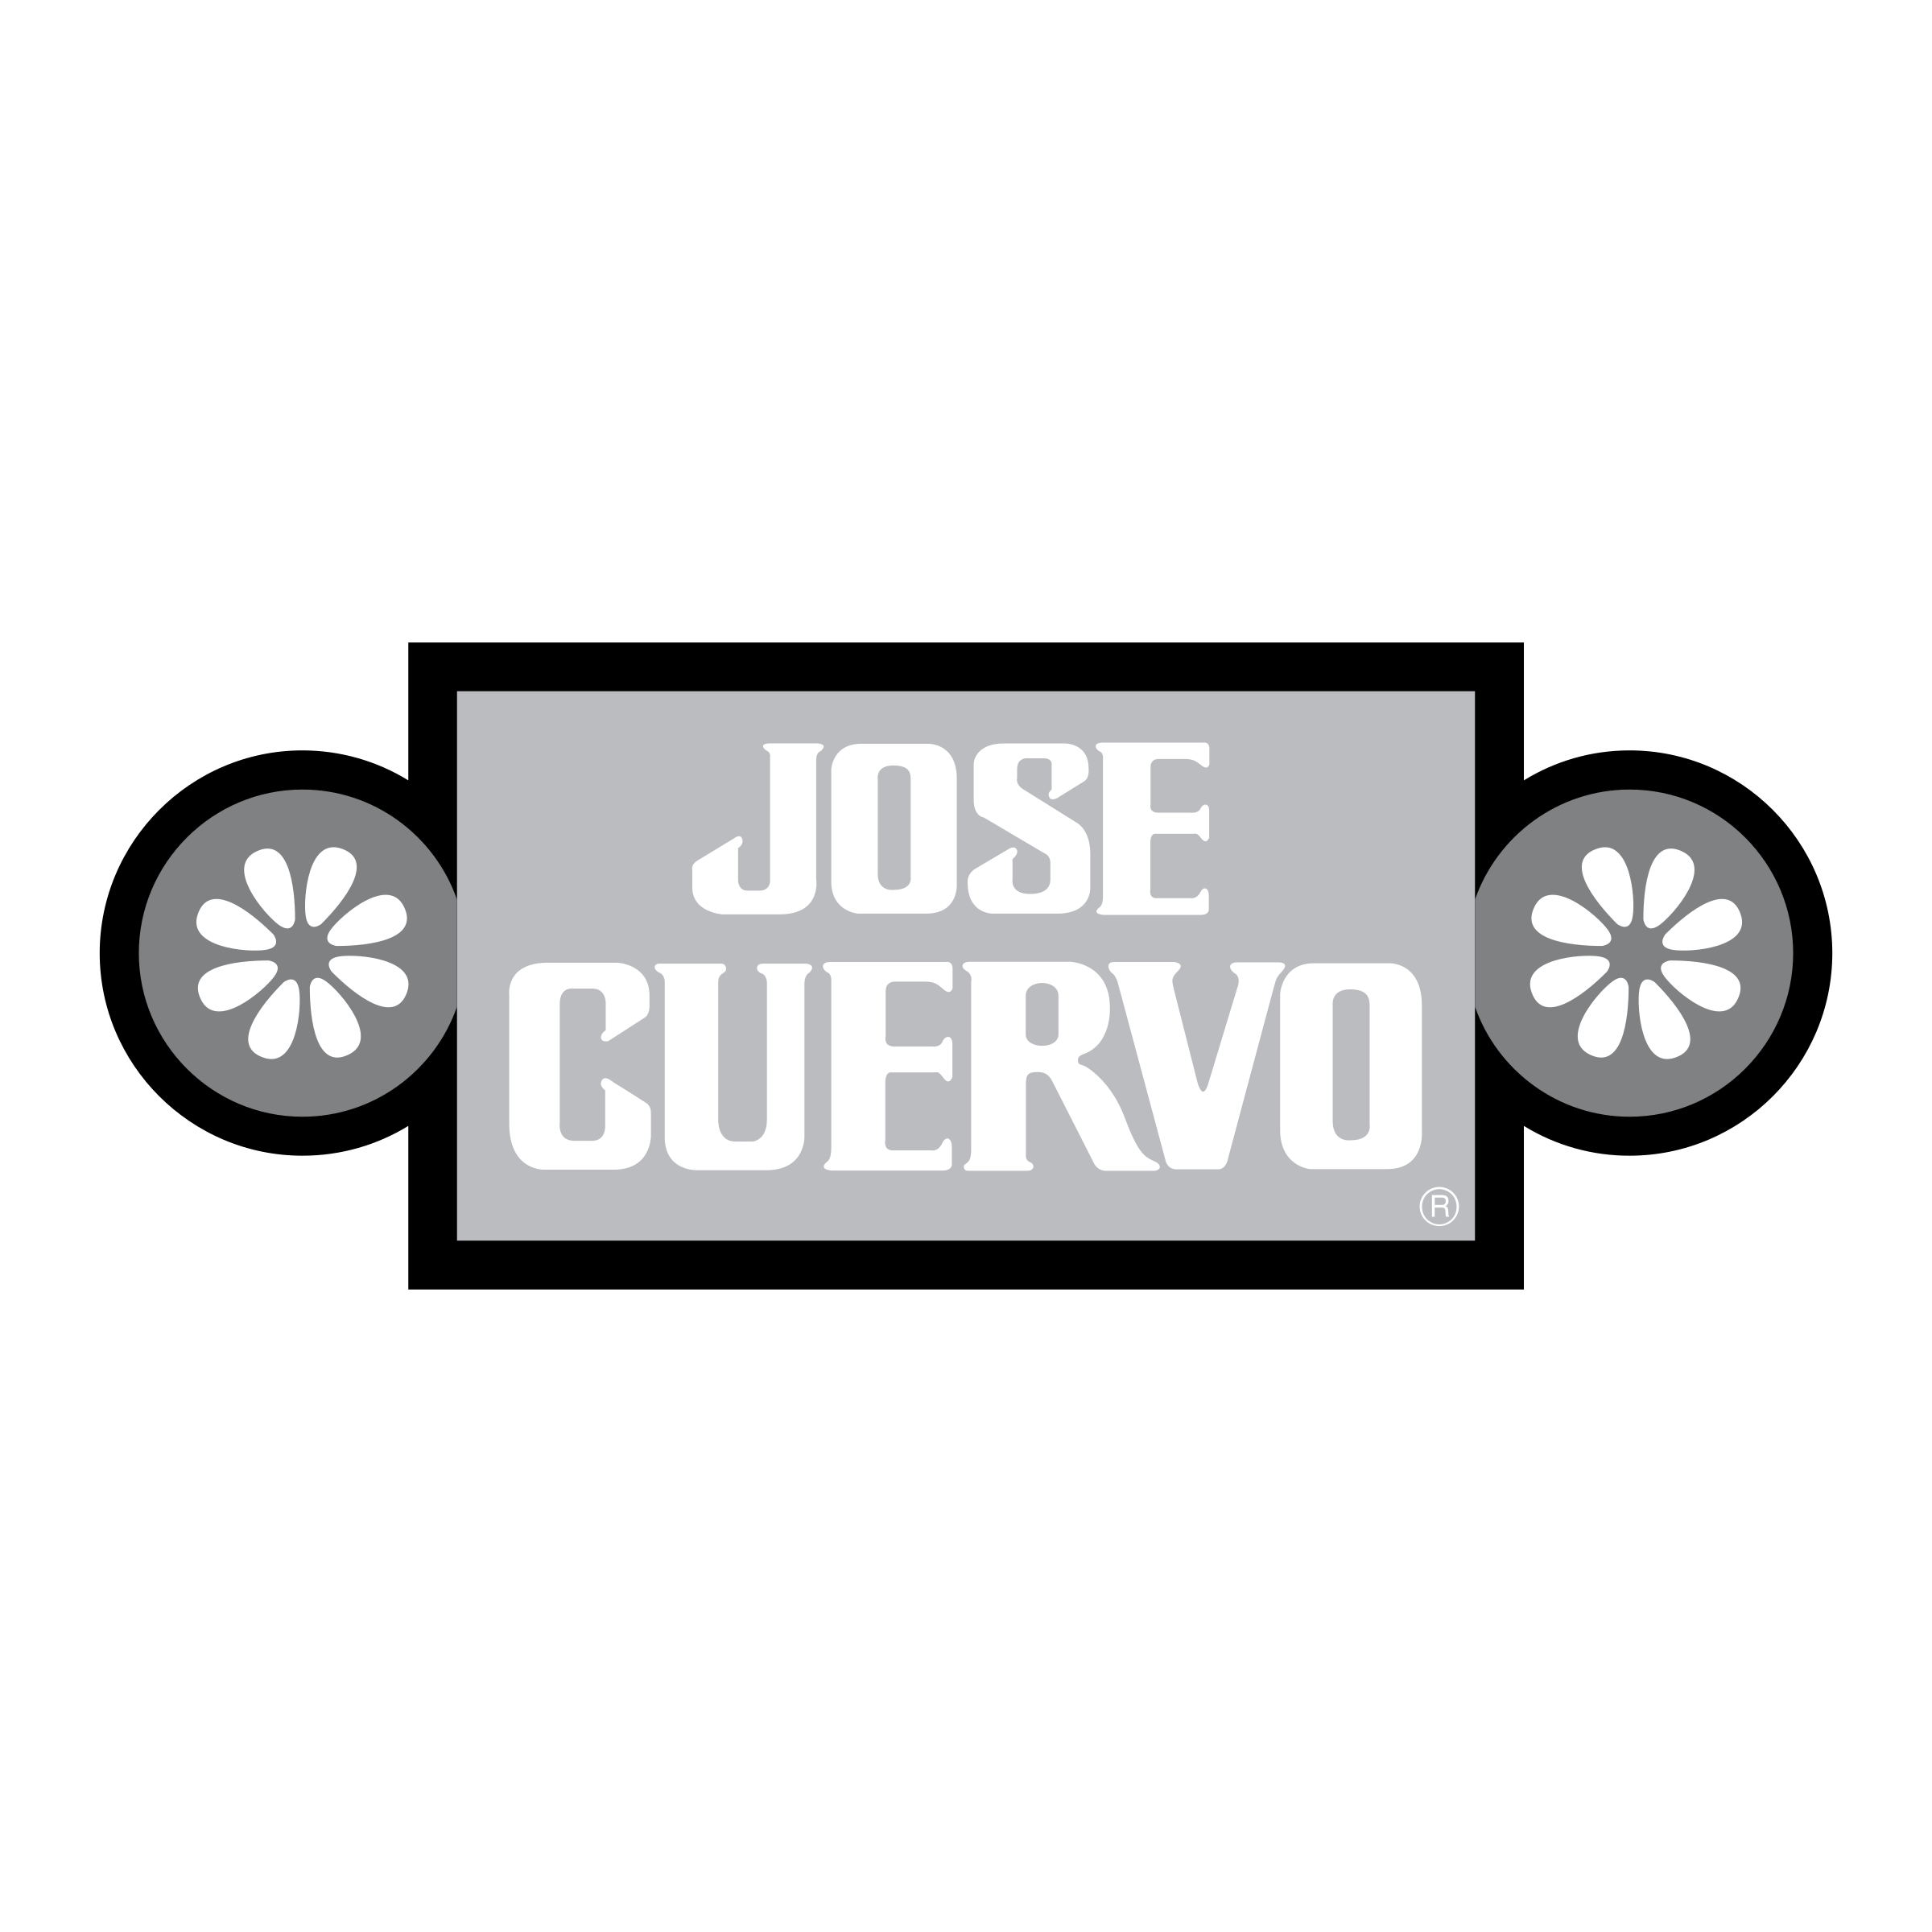 Jose Cuervo Logo PNG Transparent & SVG Vector.